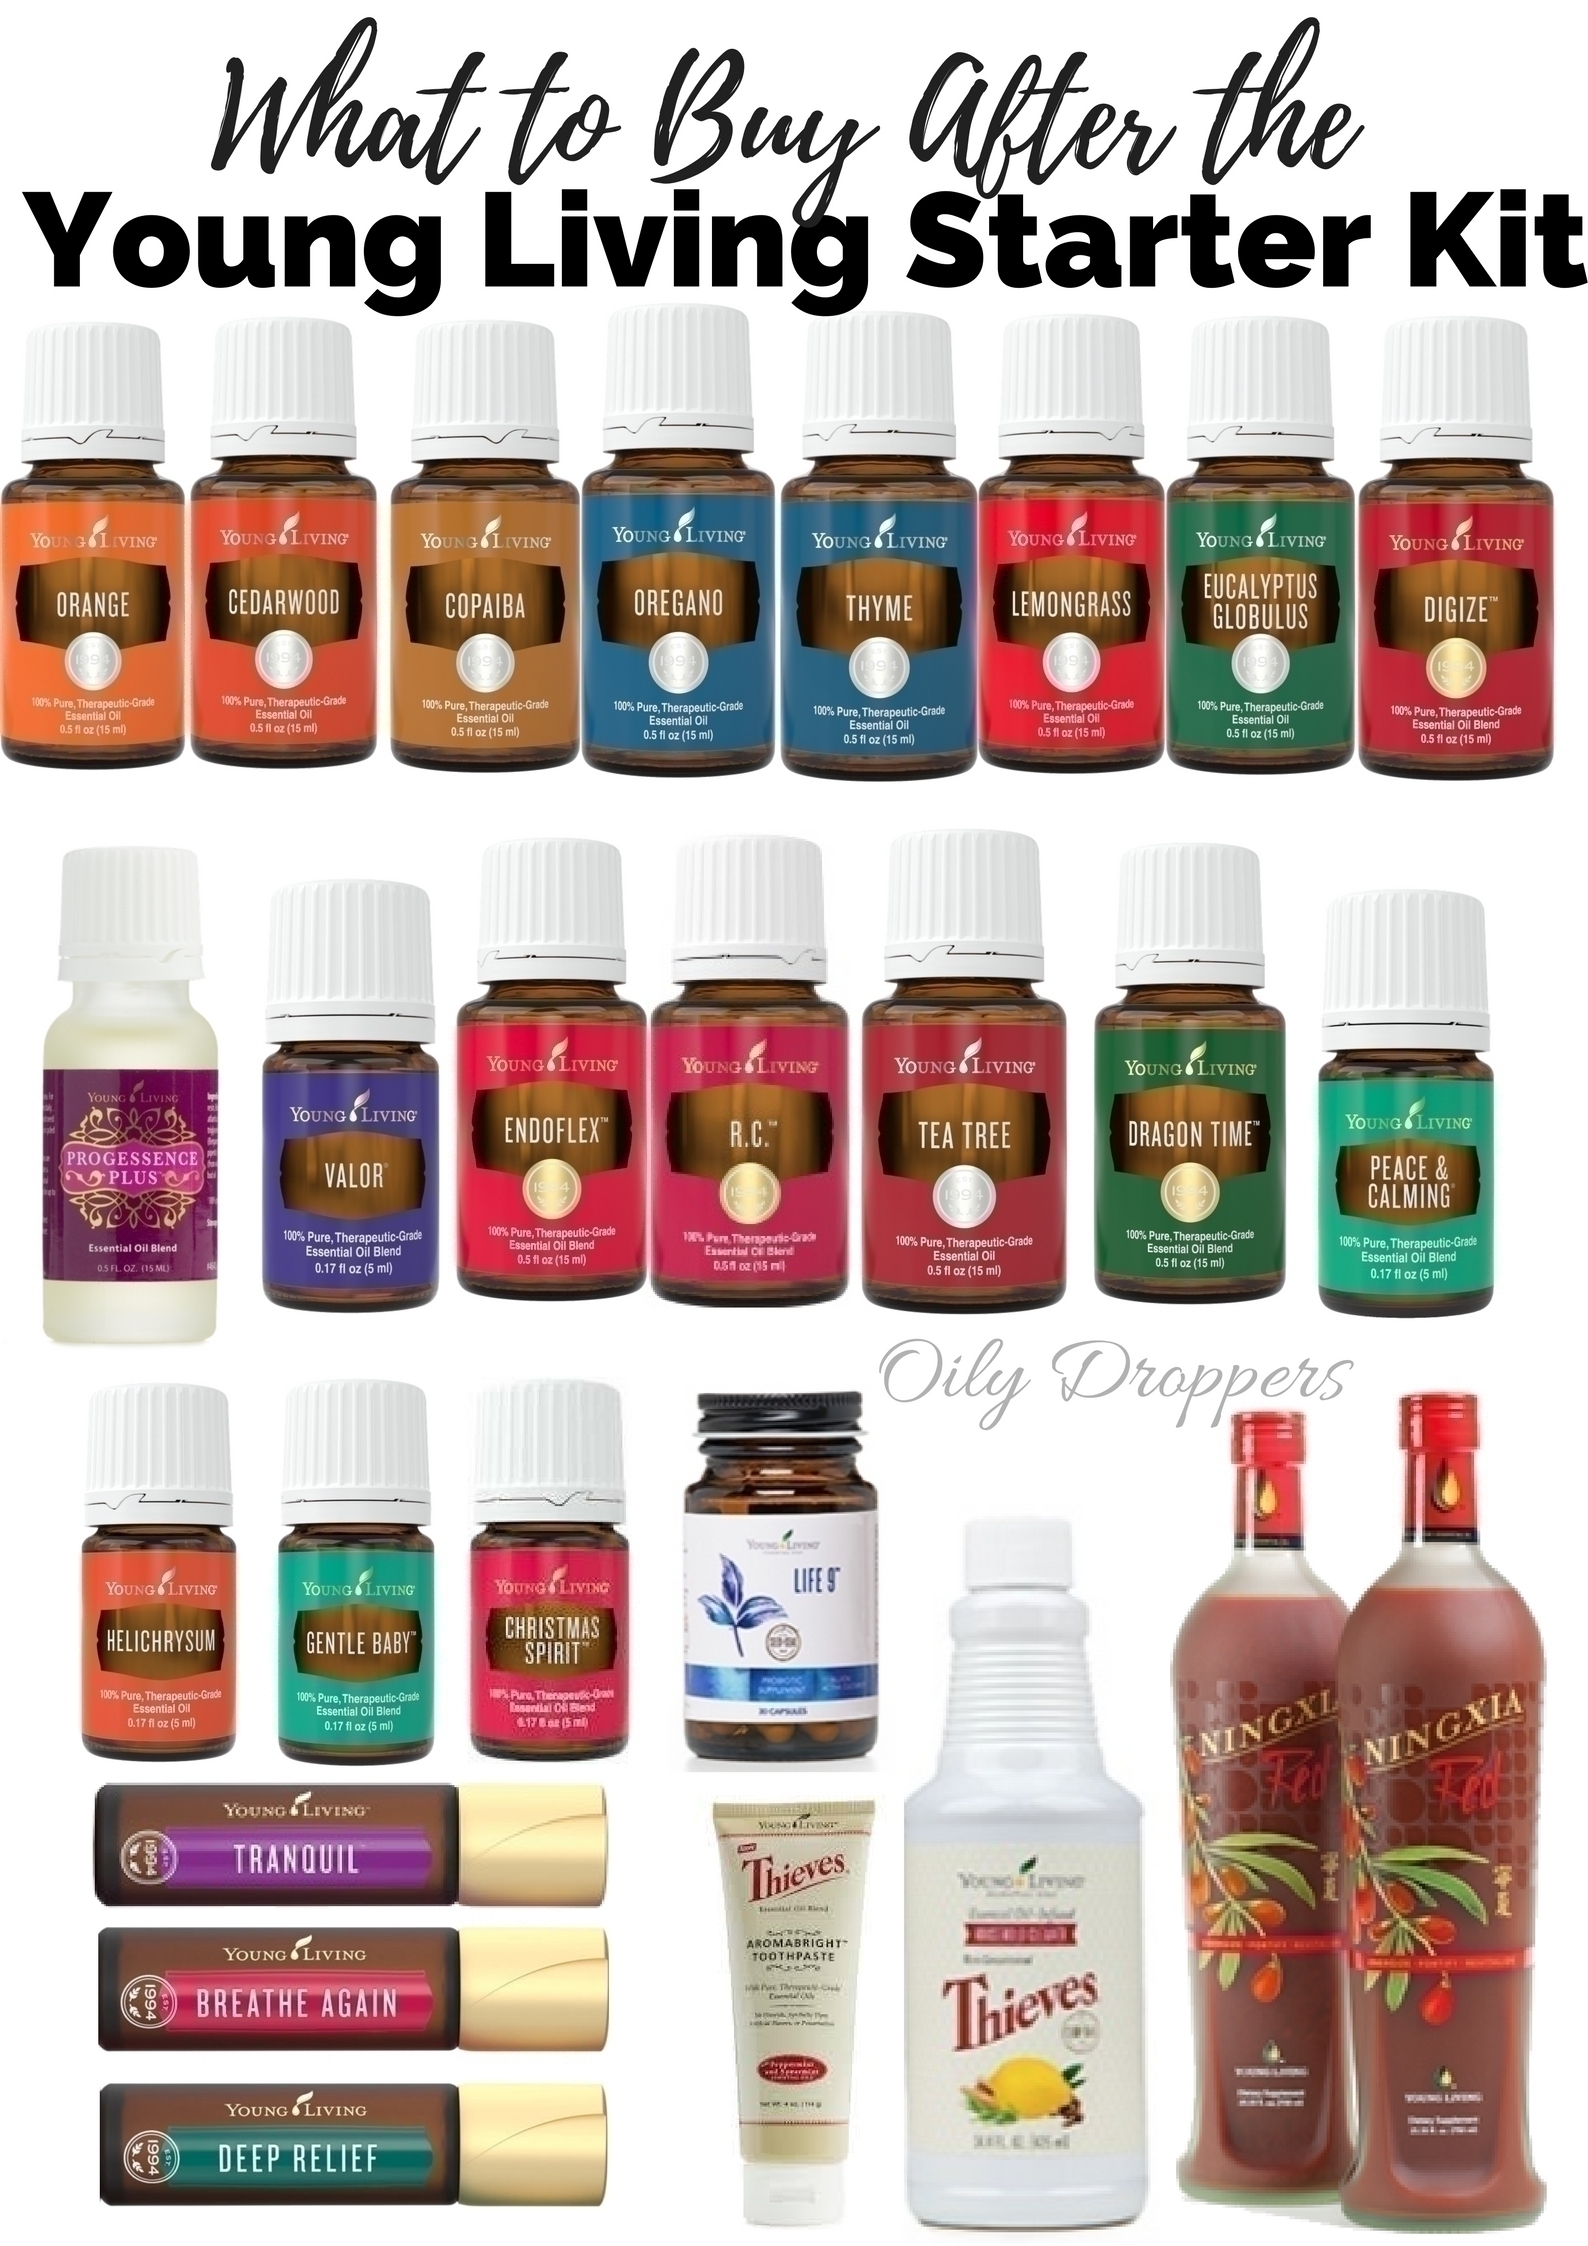 The Young Living Premium Starter Kit is one of the BEST investments you could ever make in your health. But what do you buy beyond that? Here are 25 essentials that you should think about after you buy the Young Living Premium Starter Kit.